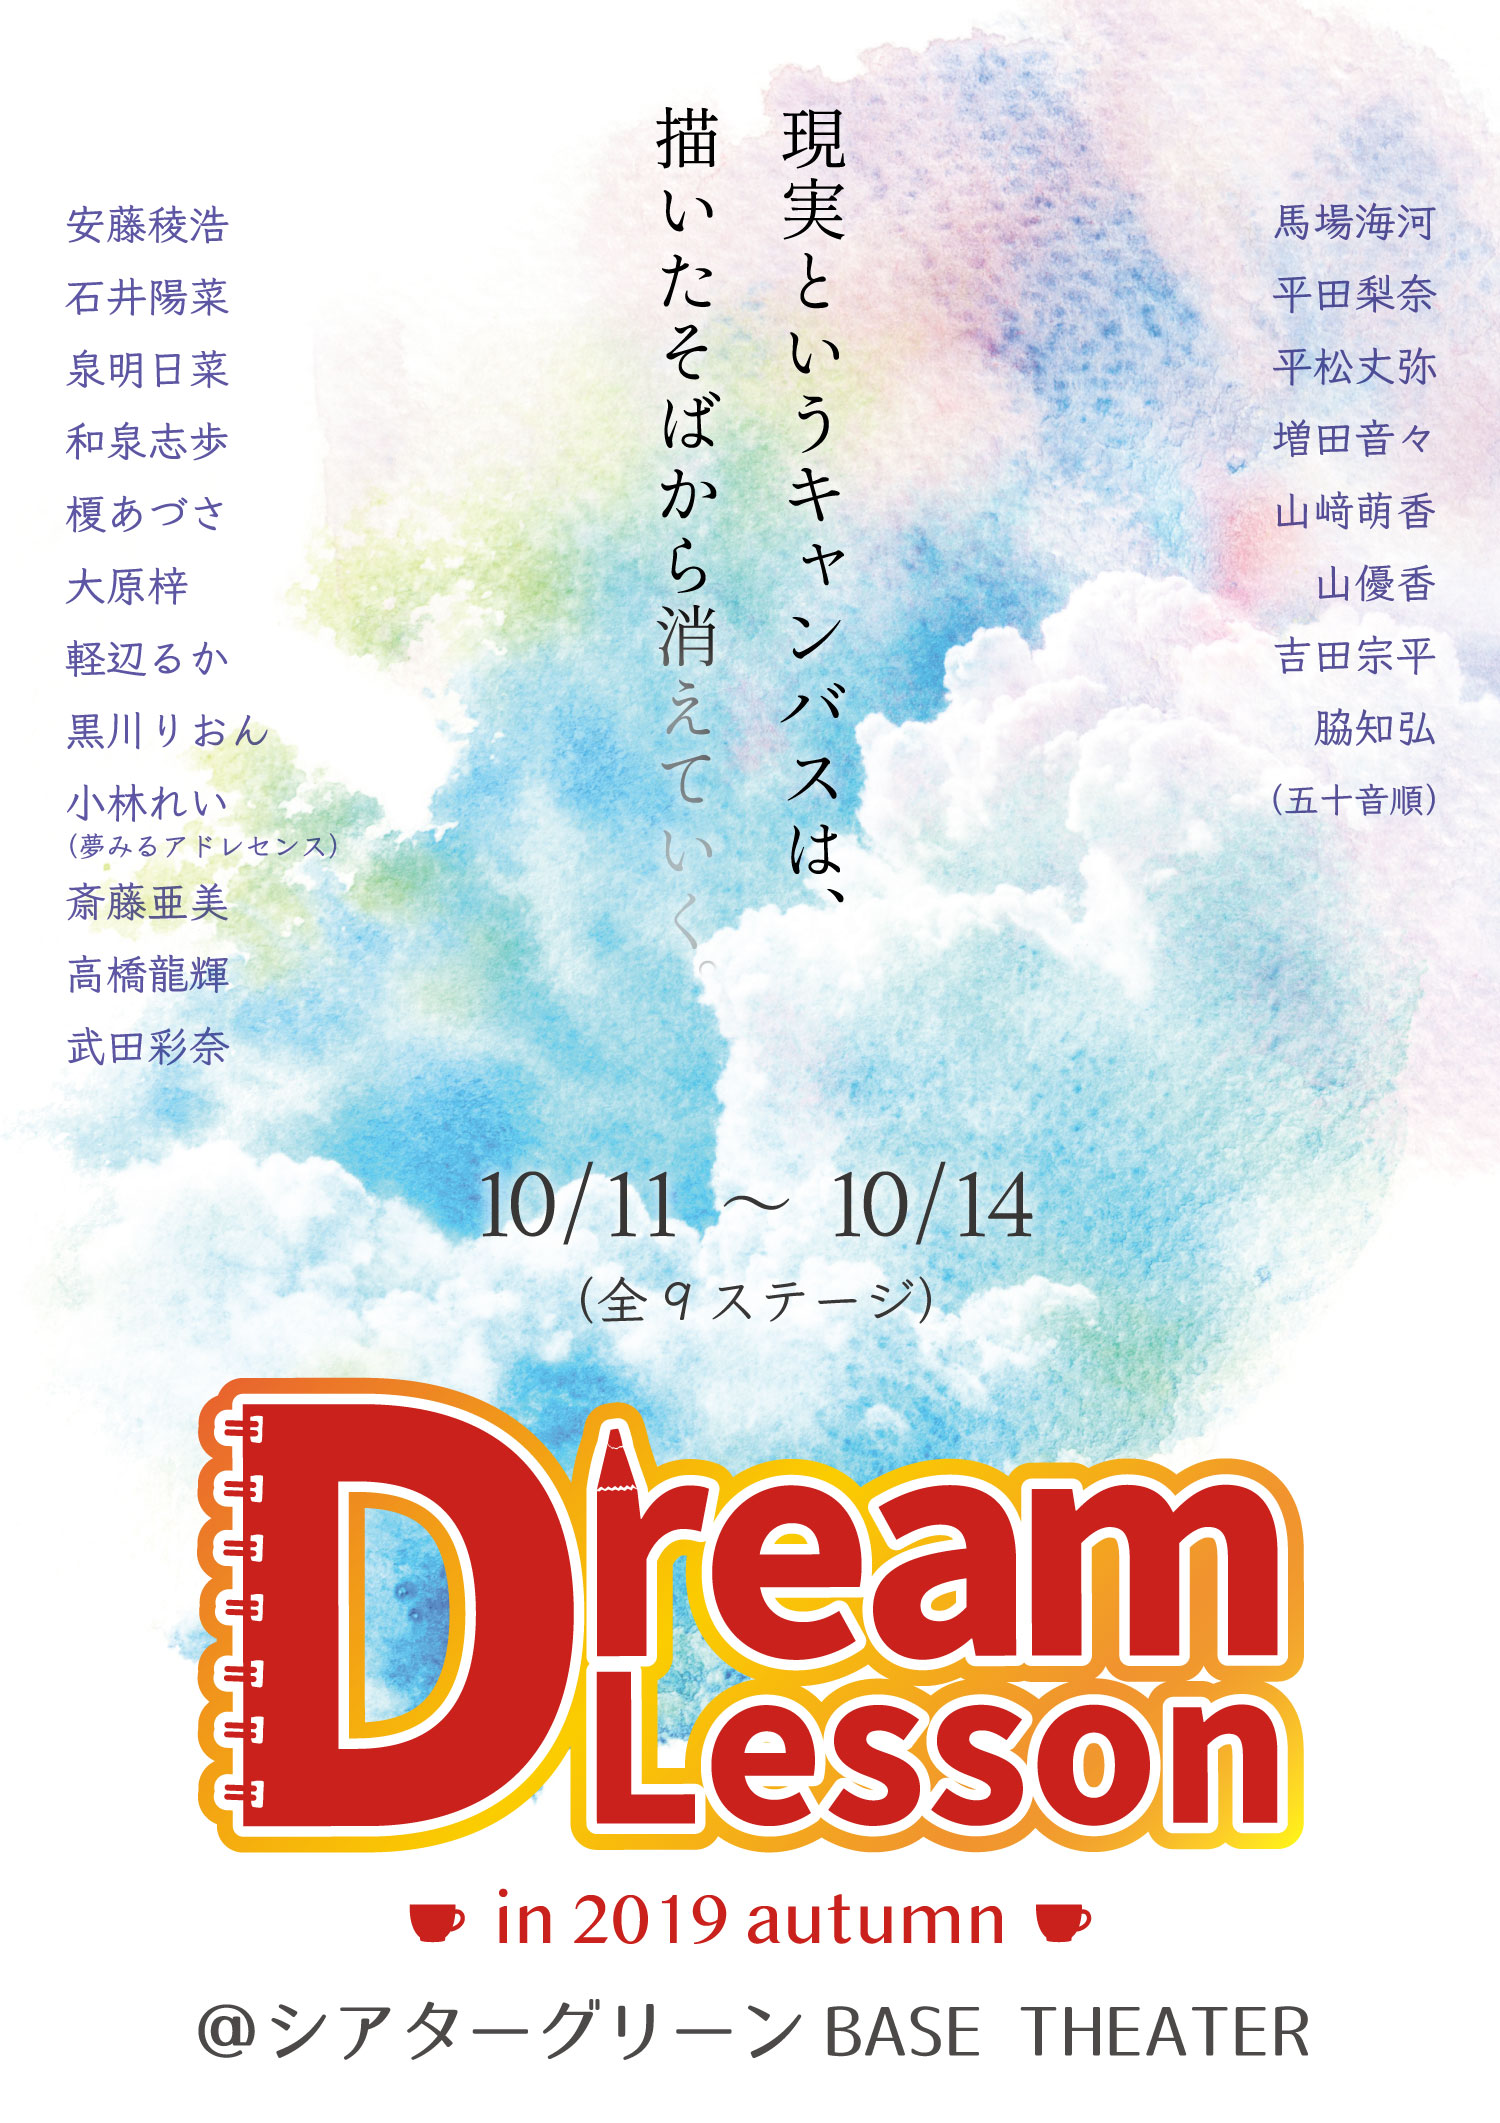 【10月14日 12時30分】公演 Dream Lesson in2019 autumn